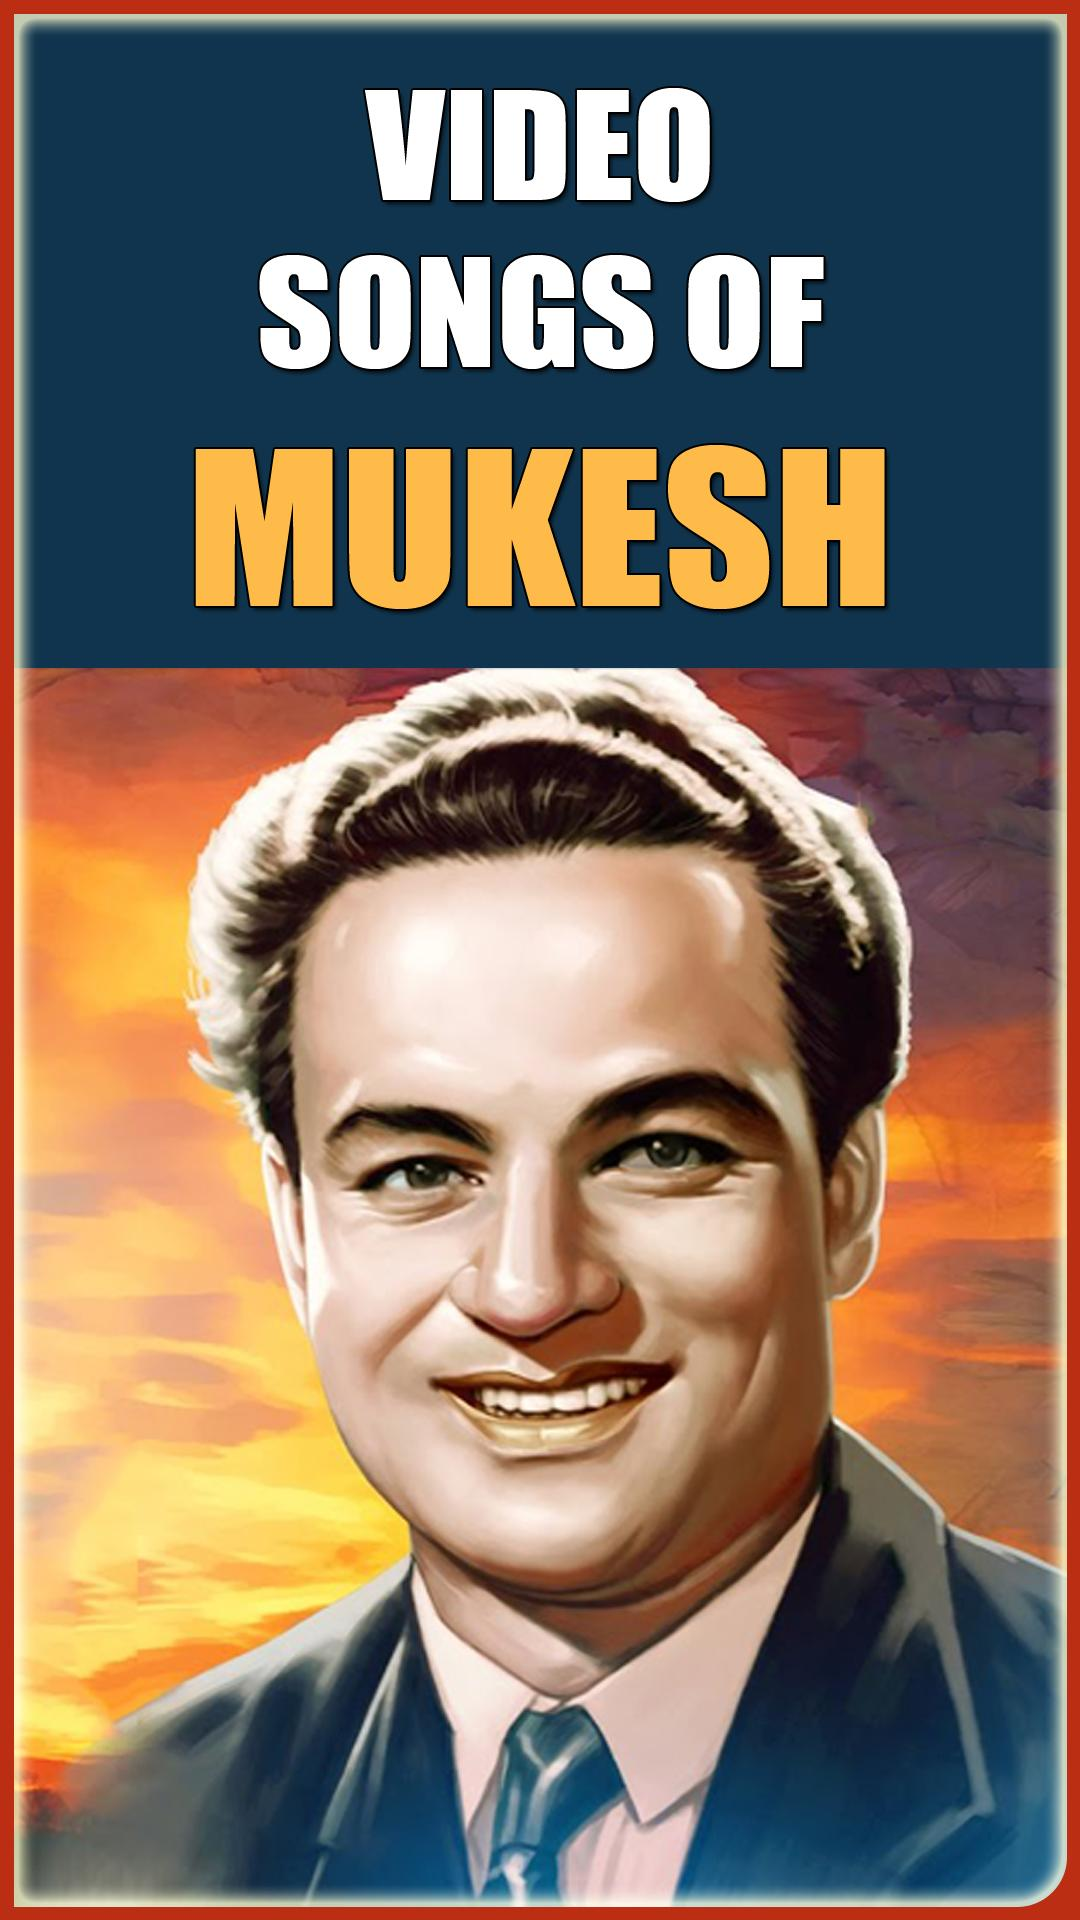 Mukesh Songs for Android - APK Download